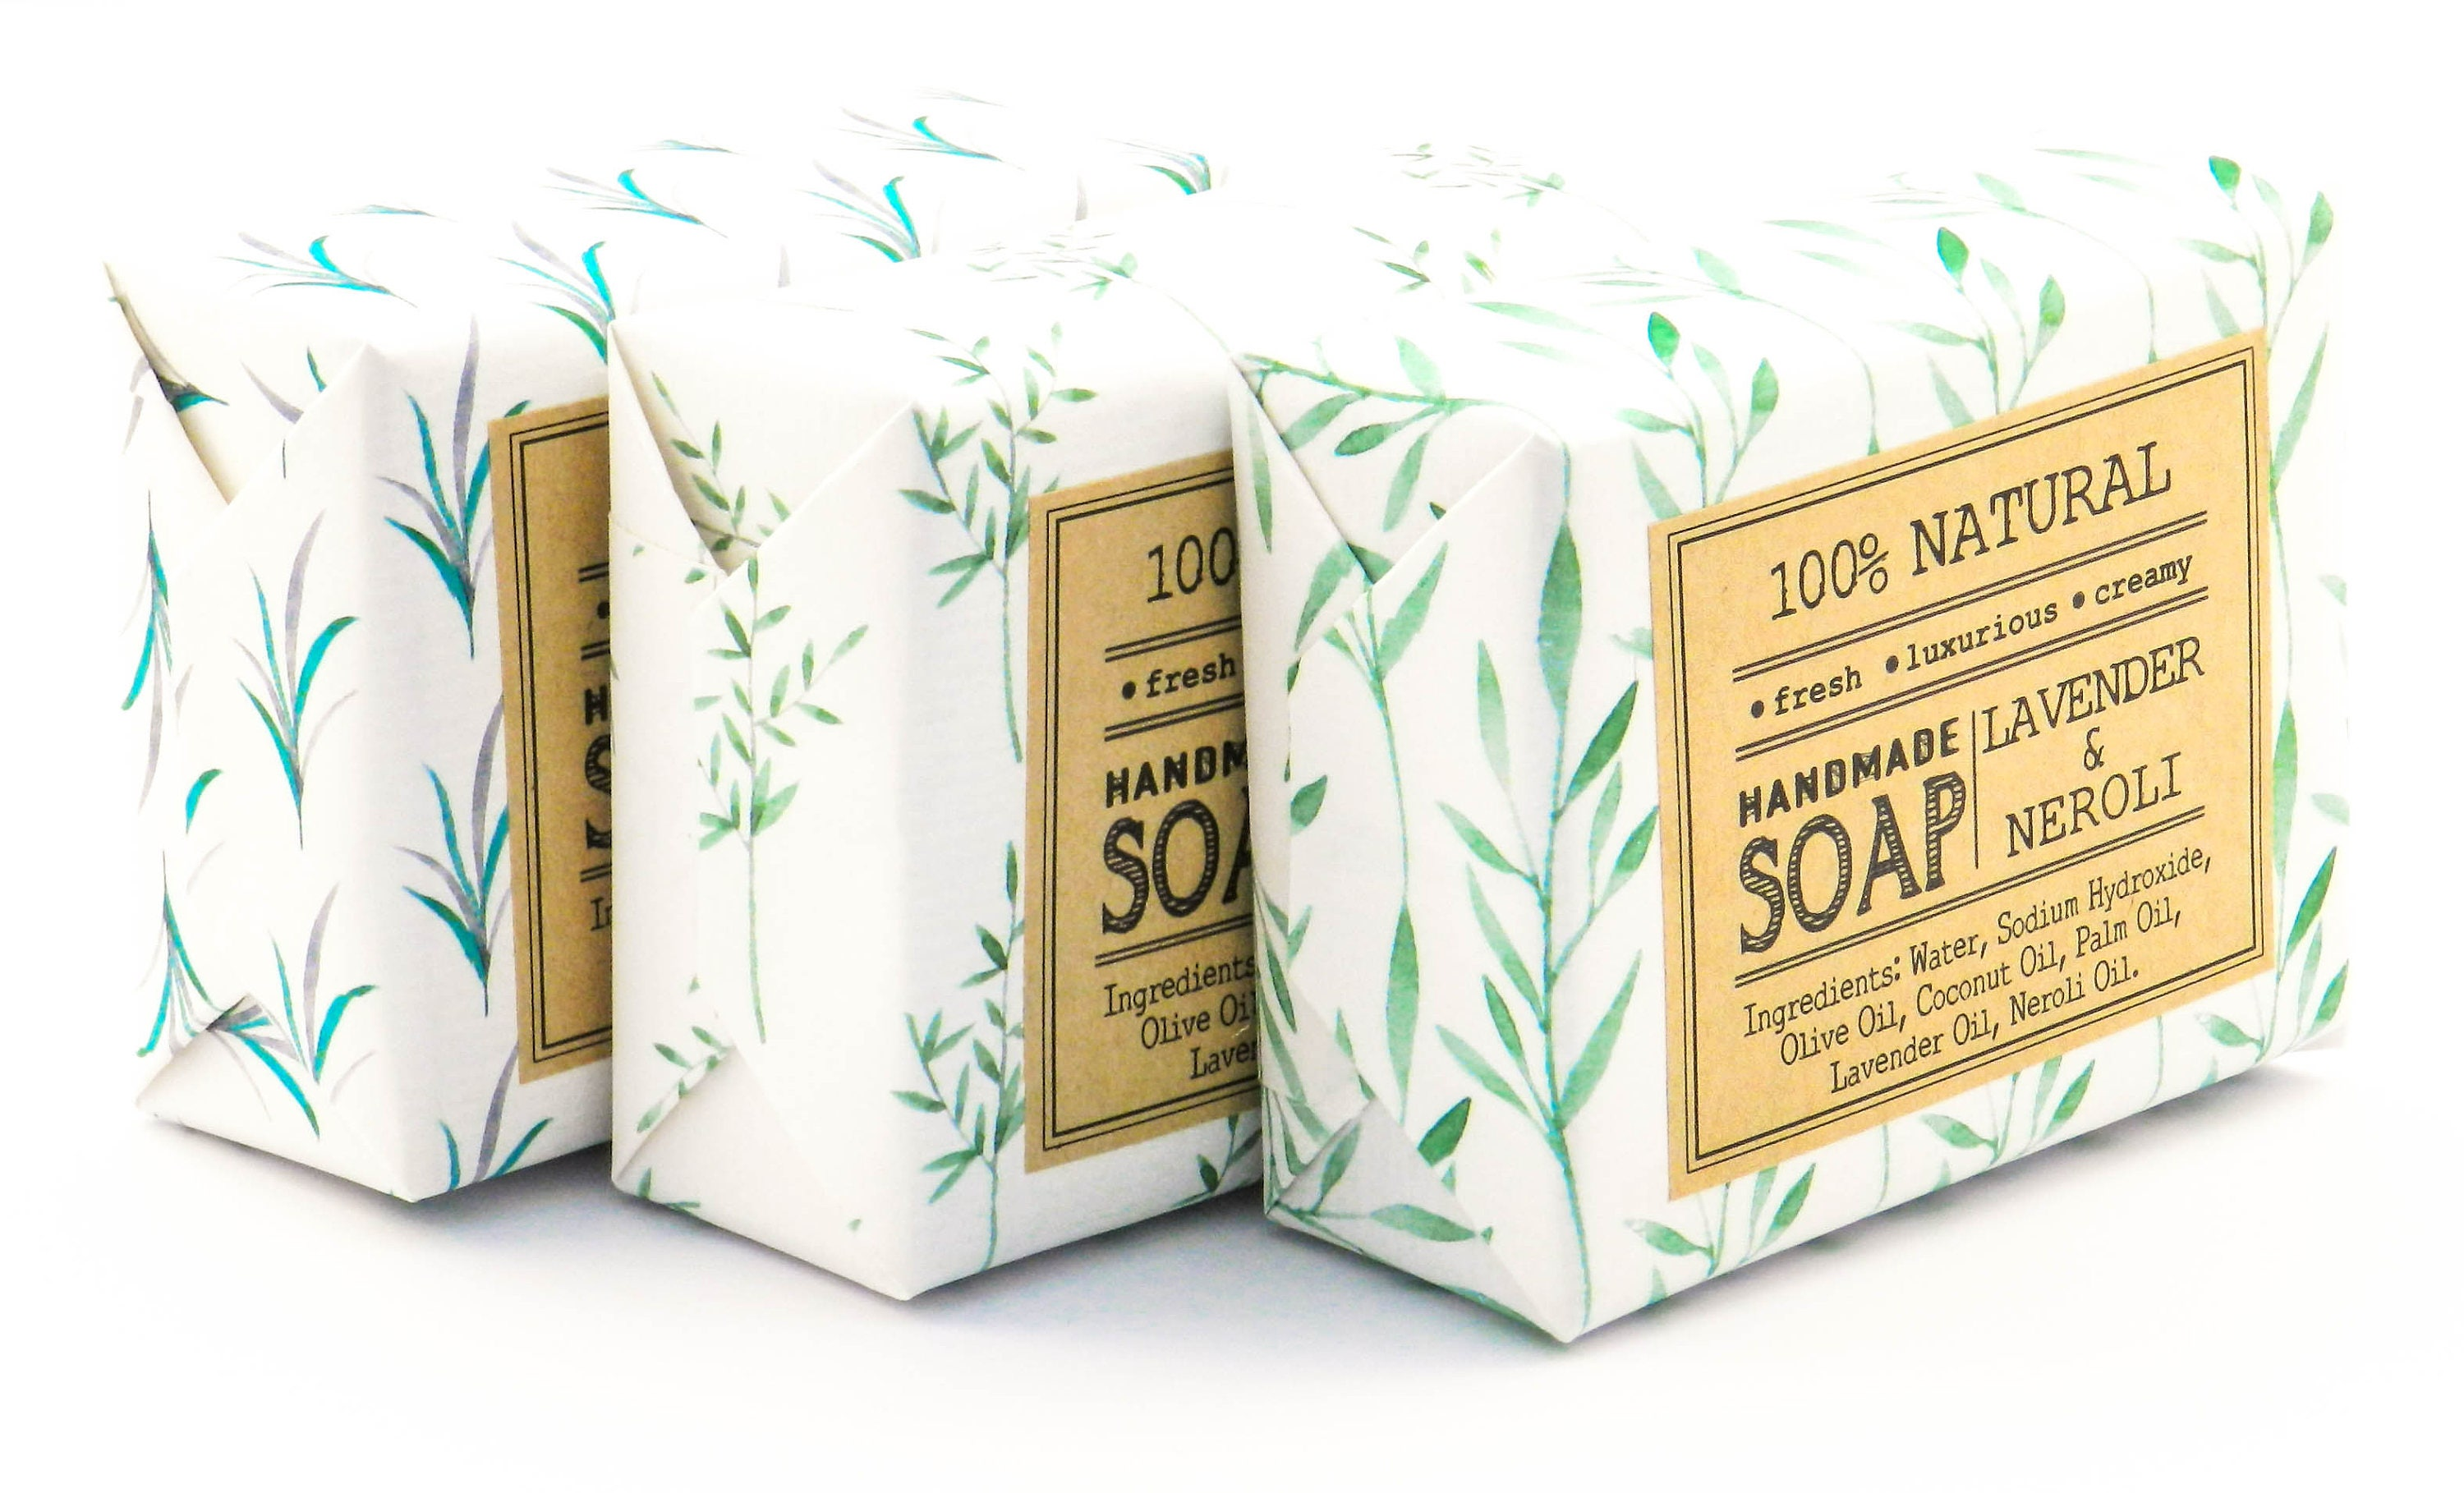 12 Handmade Botanical Soap/Candle Packaging Wrapping Kit//Wrapping ...